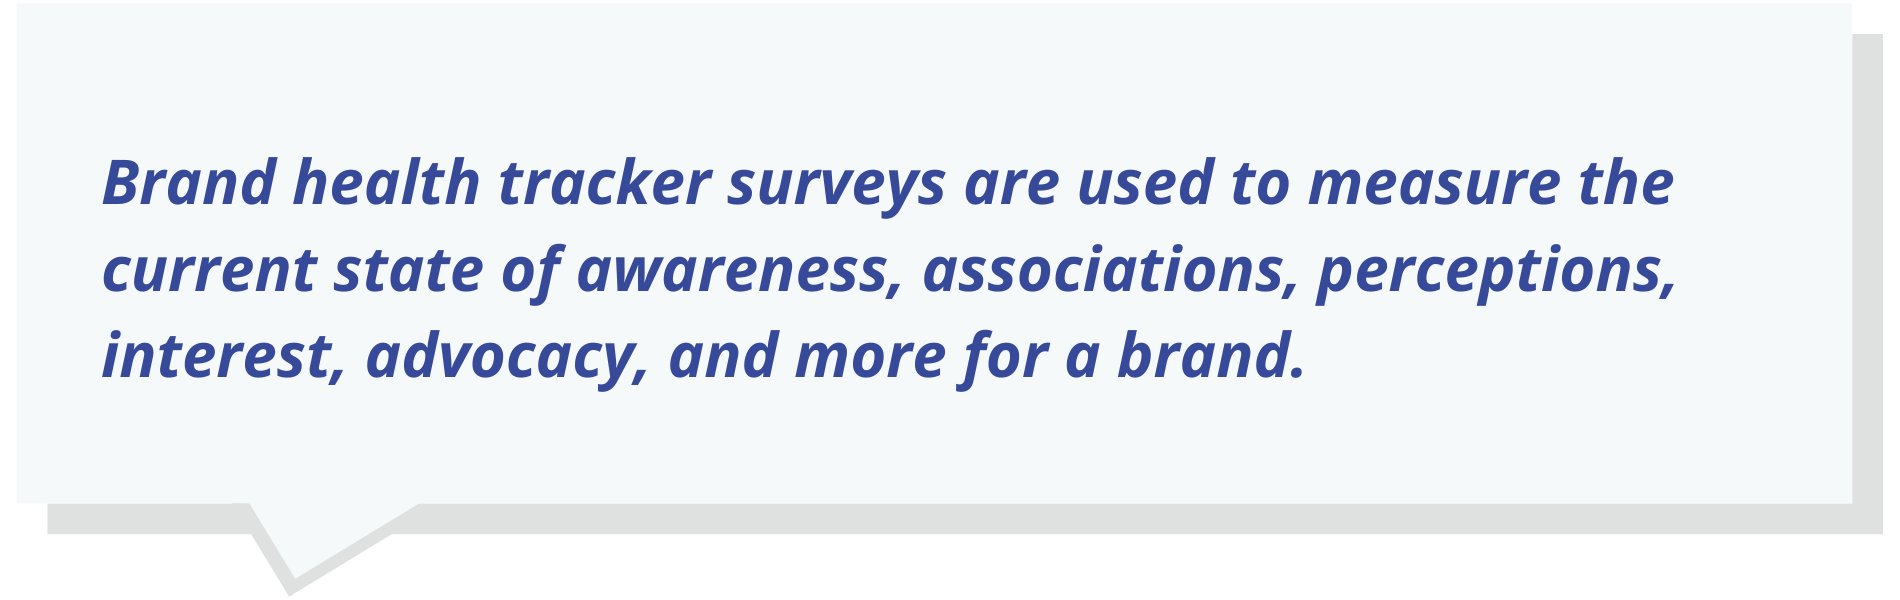 Brand health tracker surveys are used to measure the current state of awareness, associations, perceptions, interest, advocacy, and more for a brand.